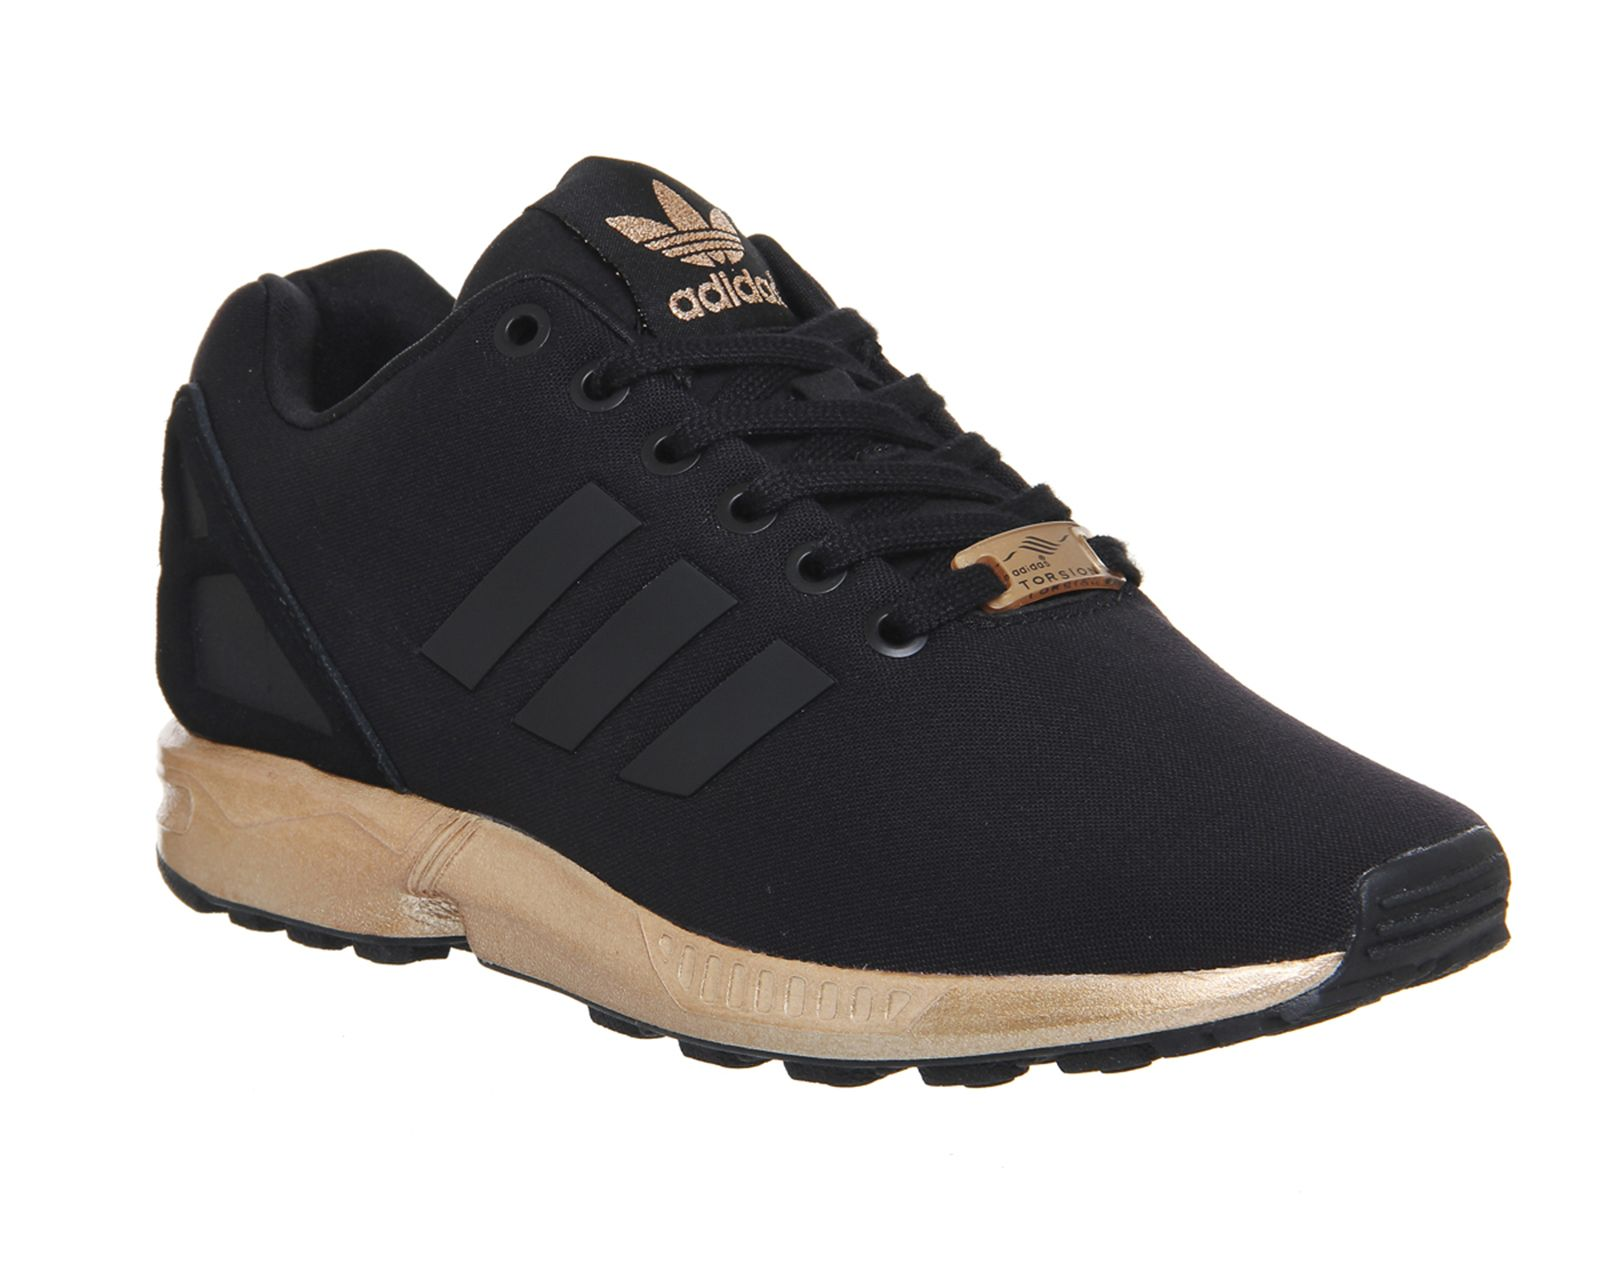 Buy Black Metallic Copper Adidas Zx Flux from OFFICE.co.uk ...